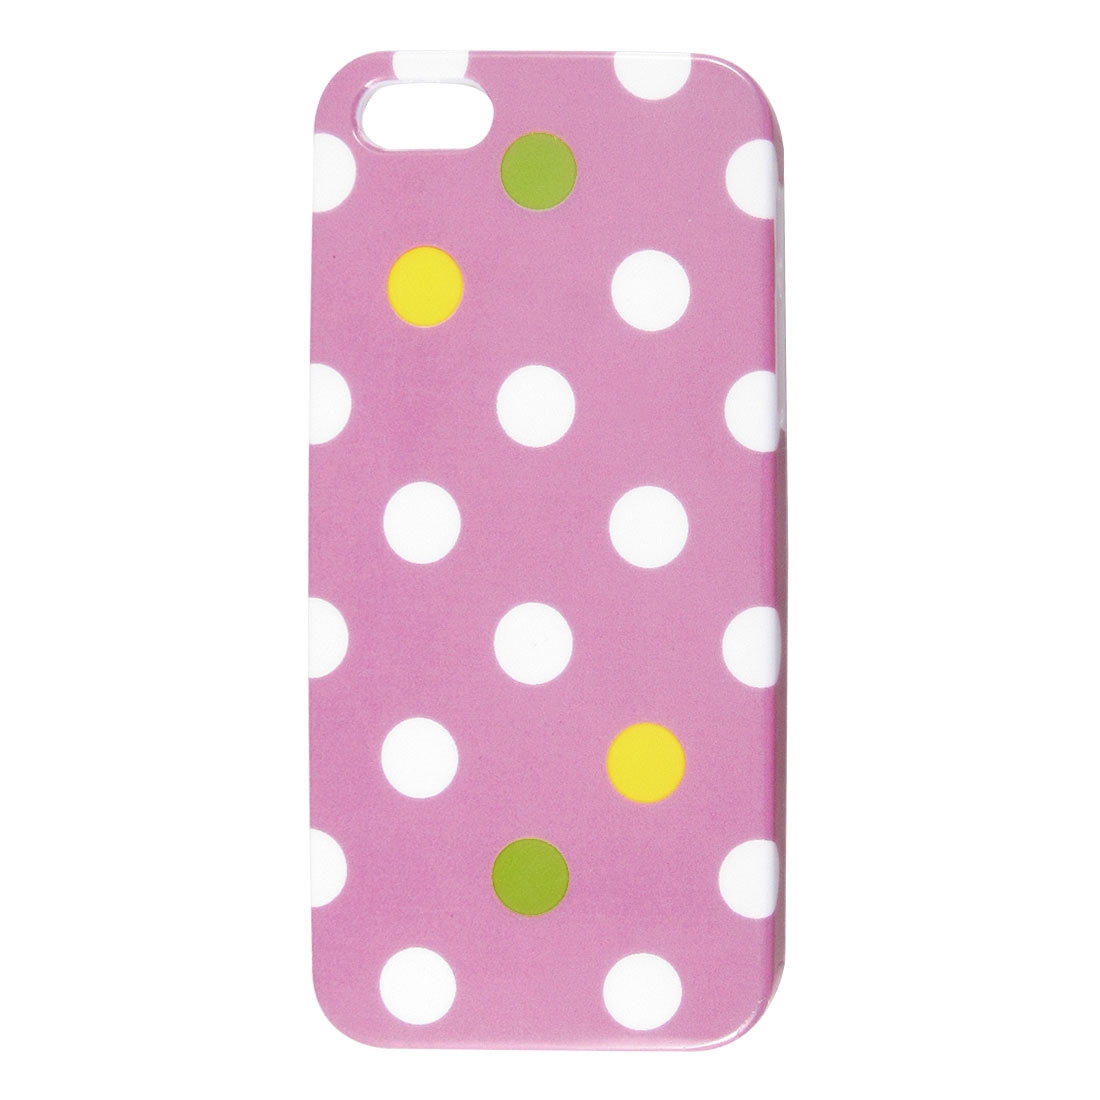 Pink White Polka Dots Hard Back Case Cover for Apple iPhone 5 5G